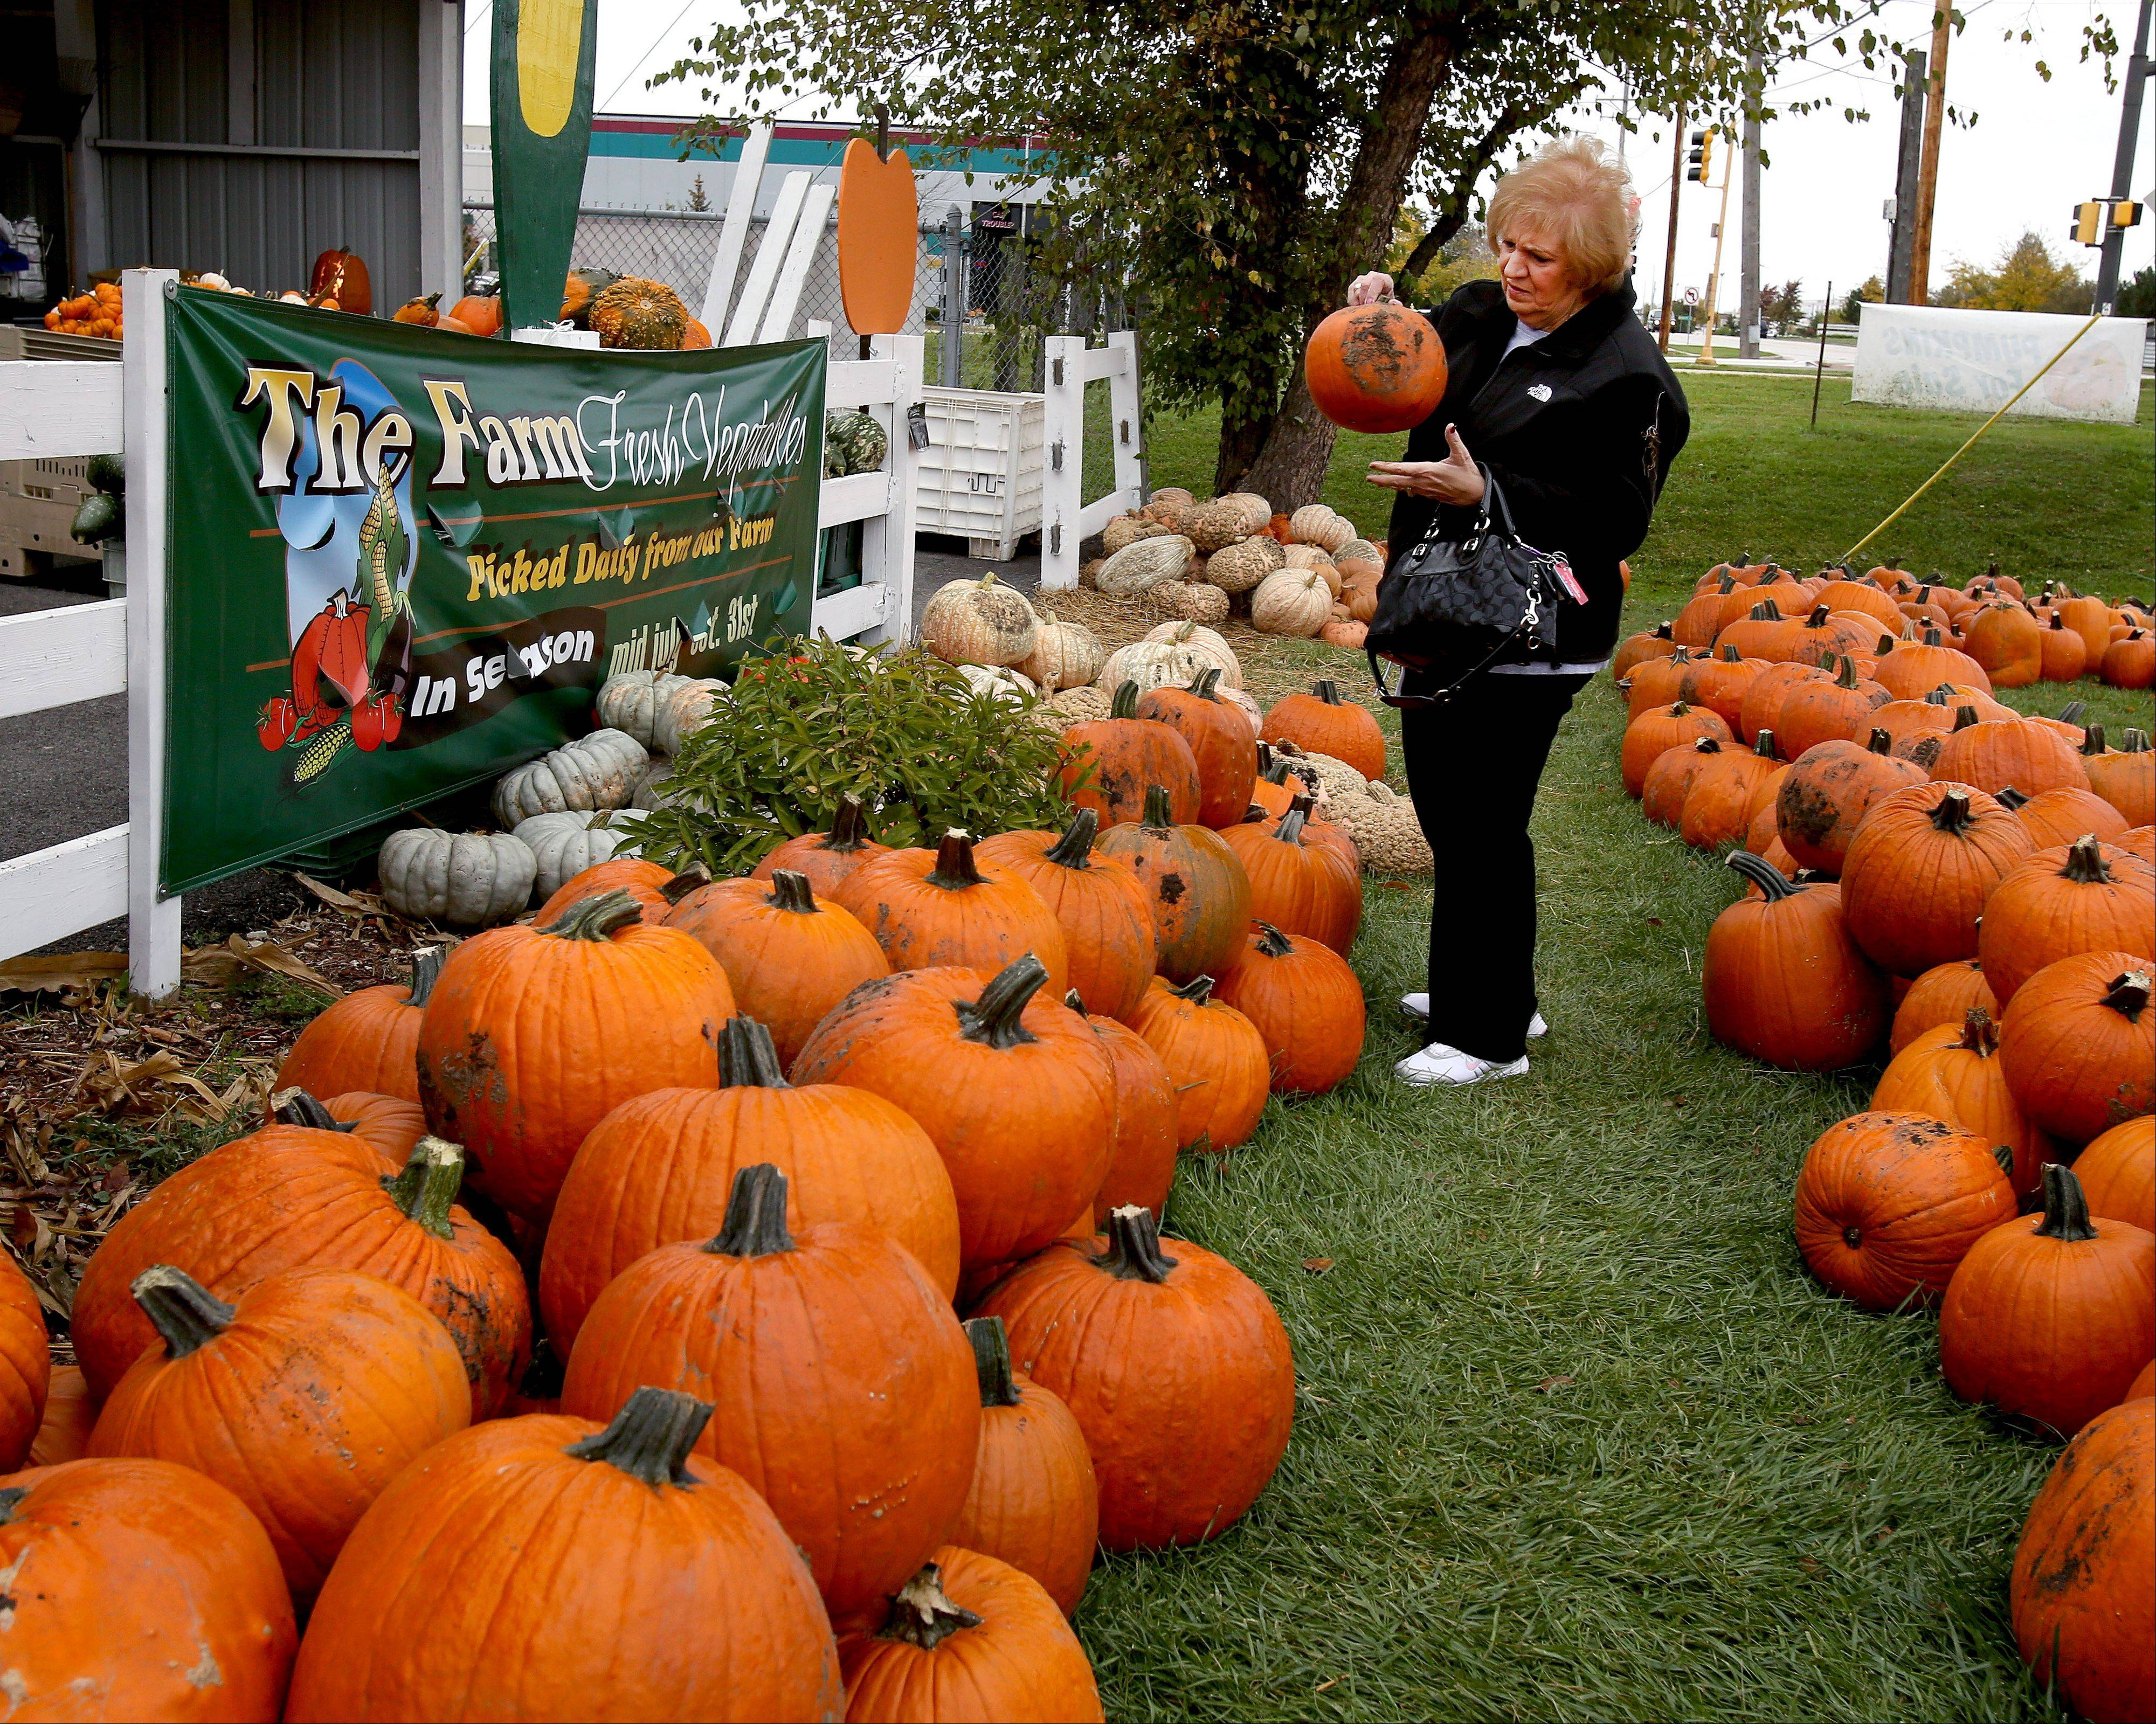 Joanne Karris of Carol Stream picks out a pumpkin for her grandchildren during a trip to The Farm in Carol Stream, which is celebrating its 50th year selling fresh seasonal produce in DuPage County.